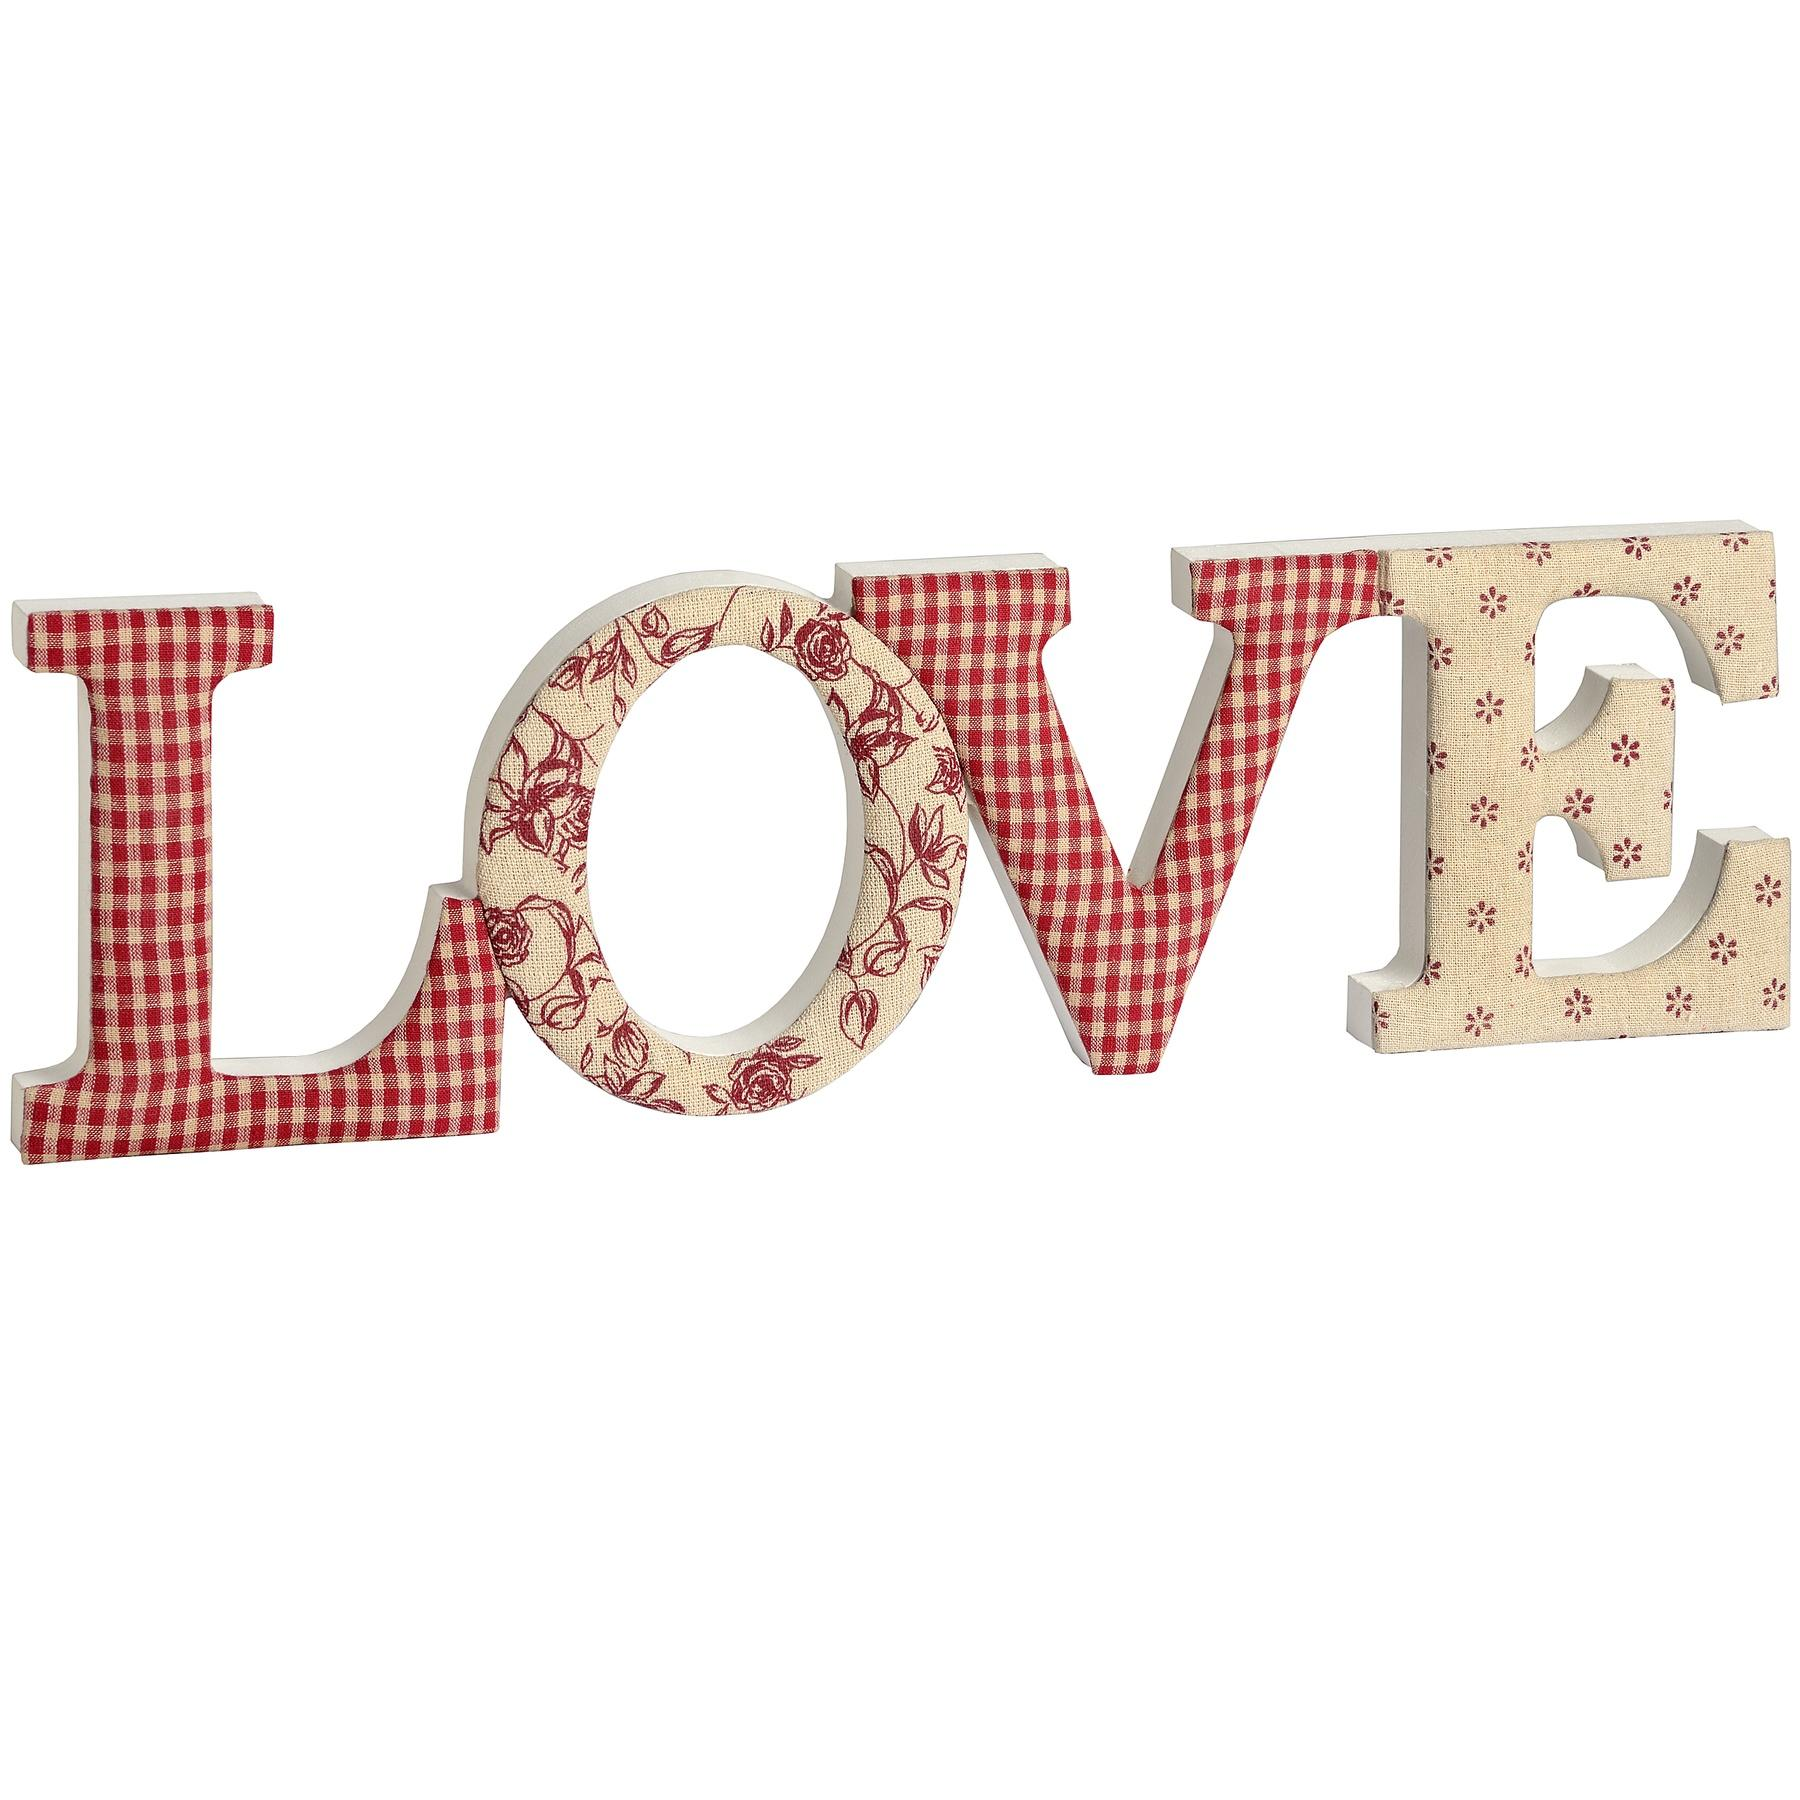 Fabric 'LOVE' Ornamental Letters